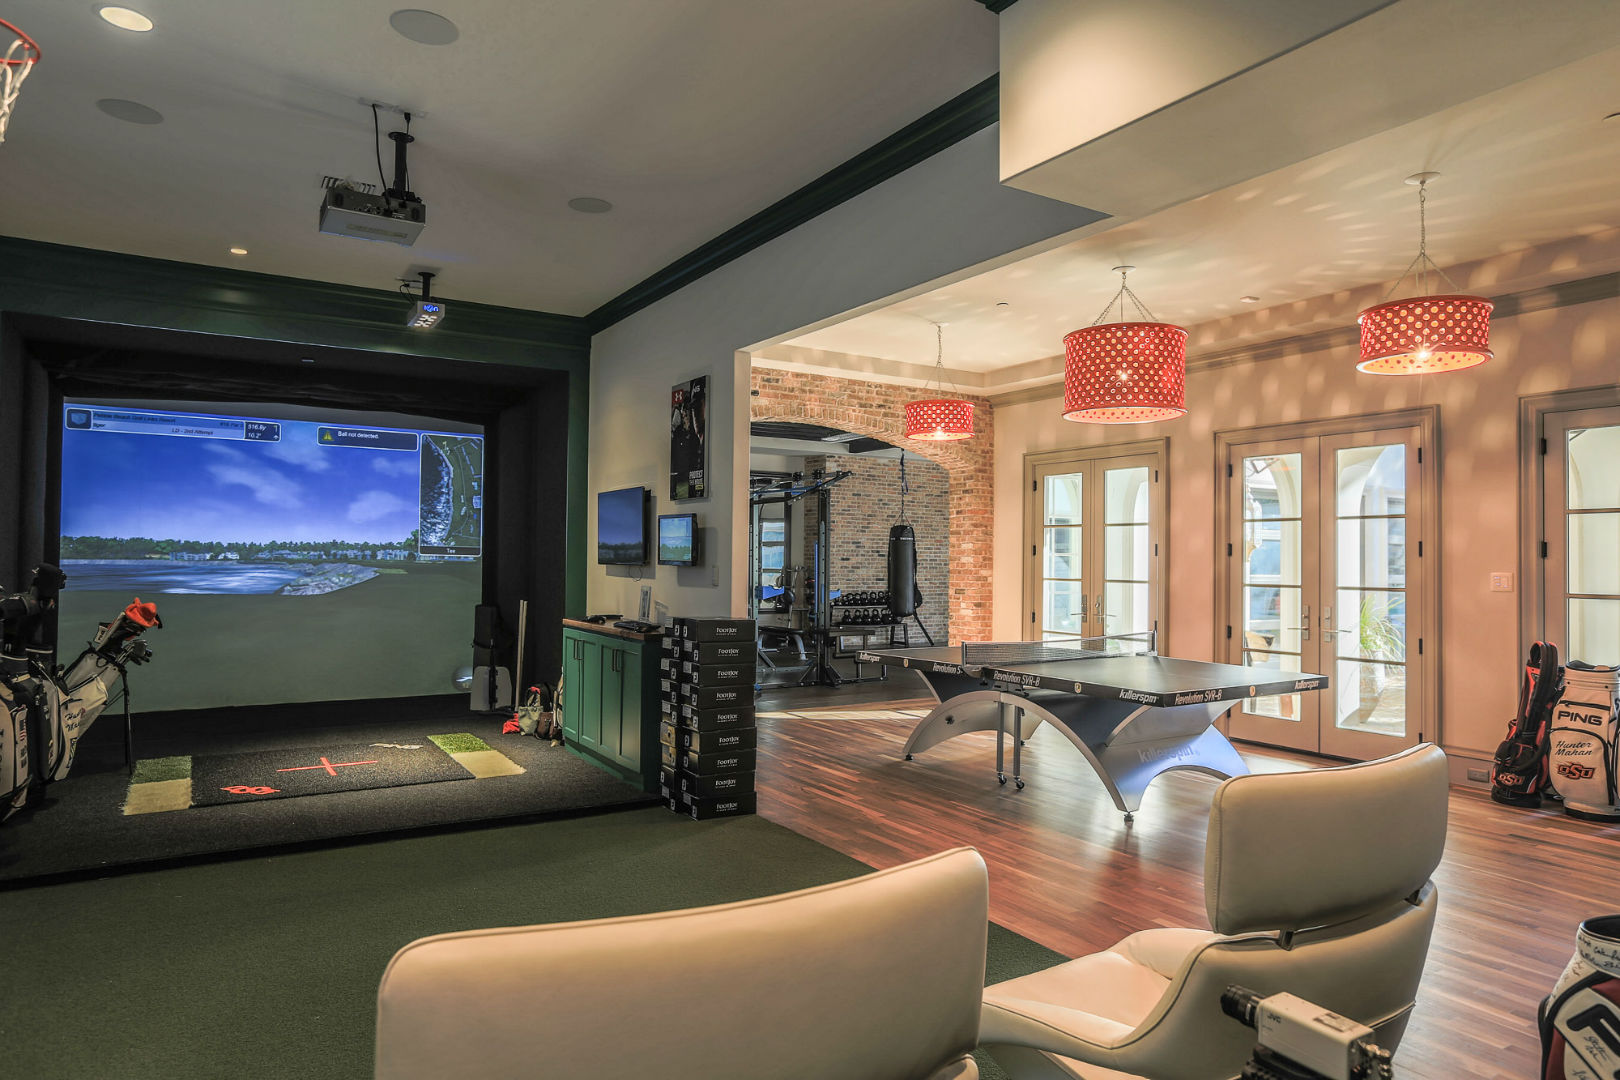 Home Gym Design: Fascinating Home Gym Design Ideas To Get You Rolling